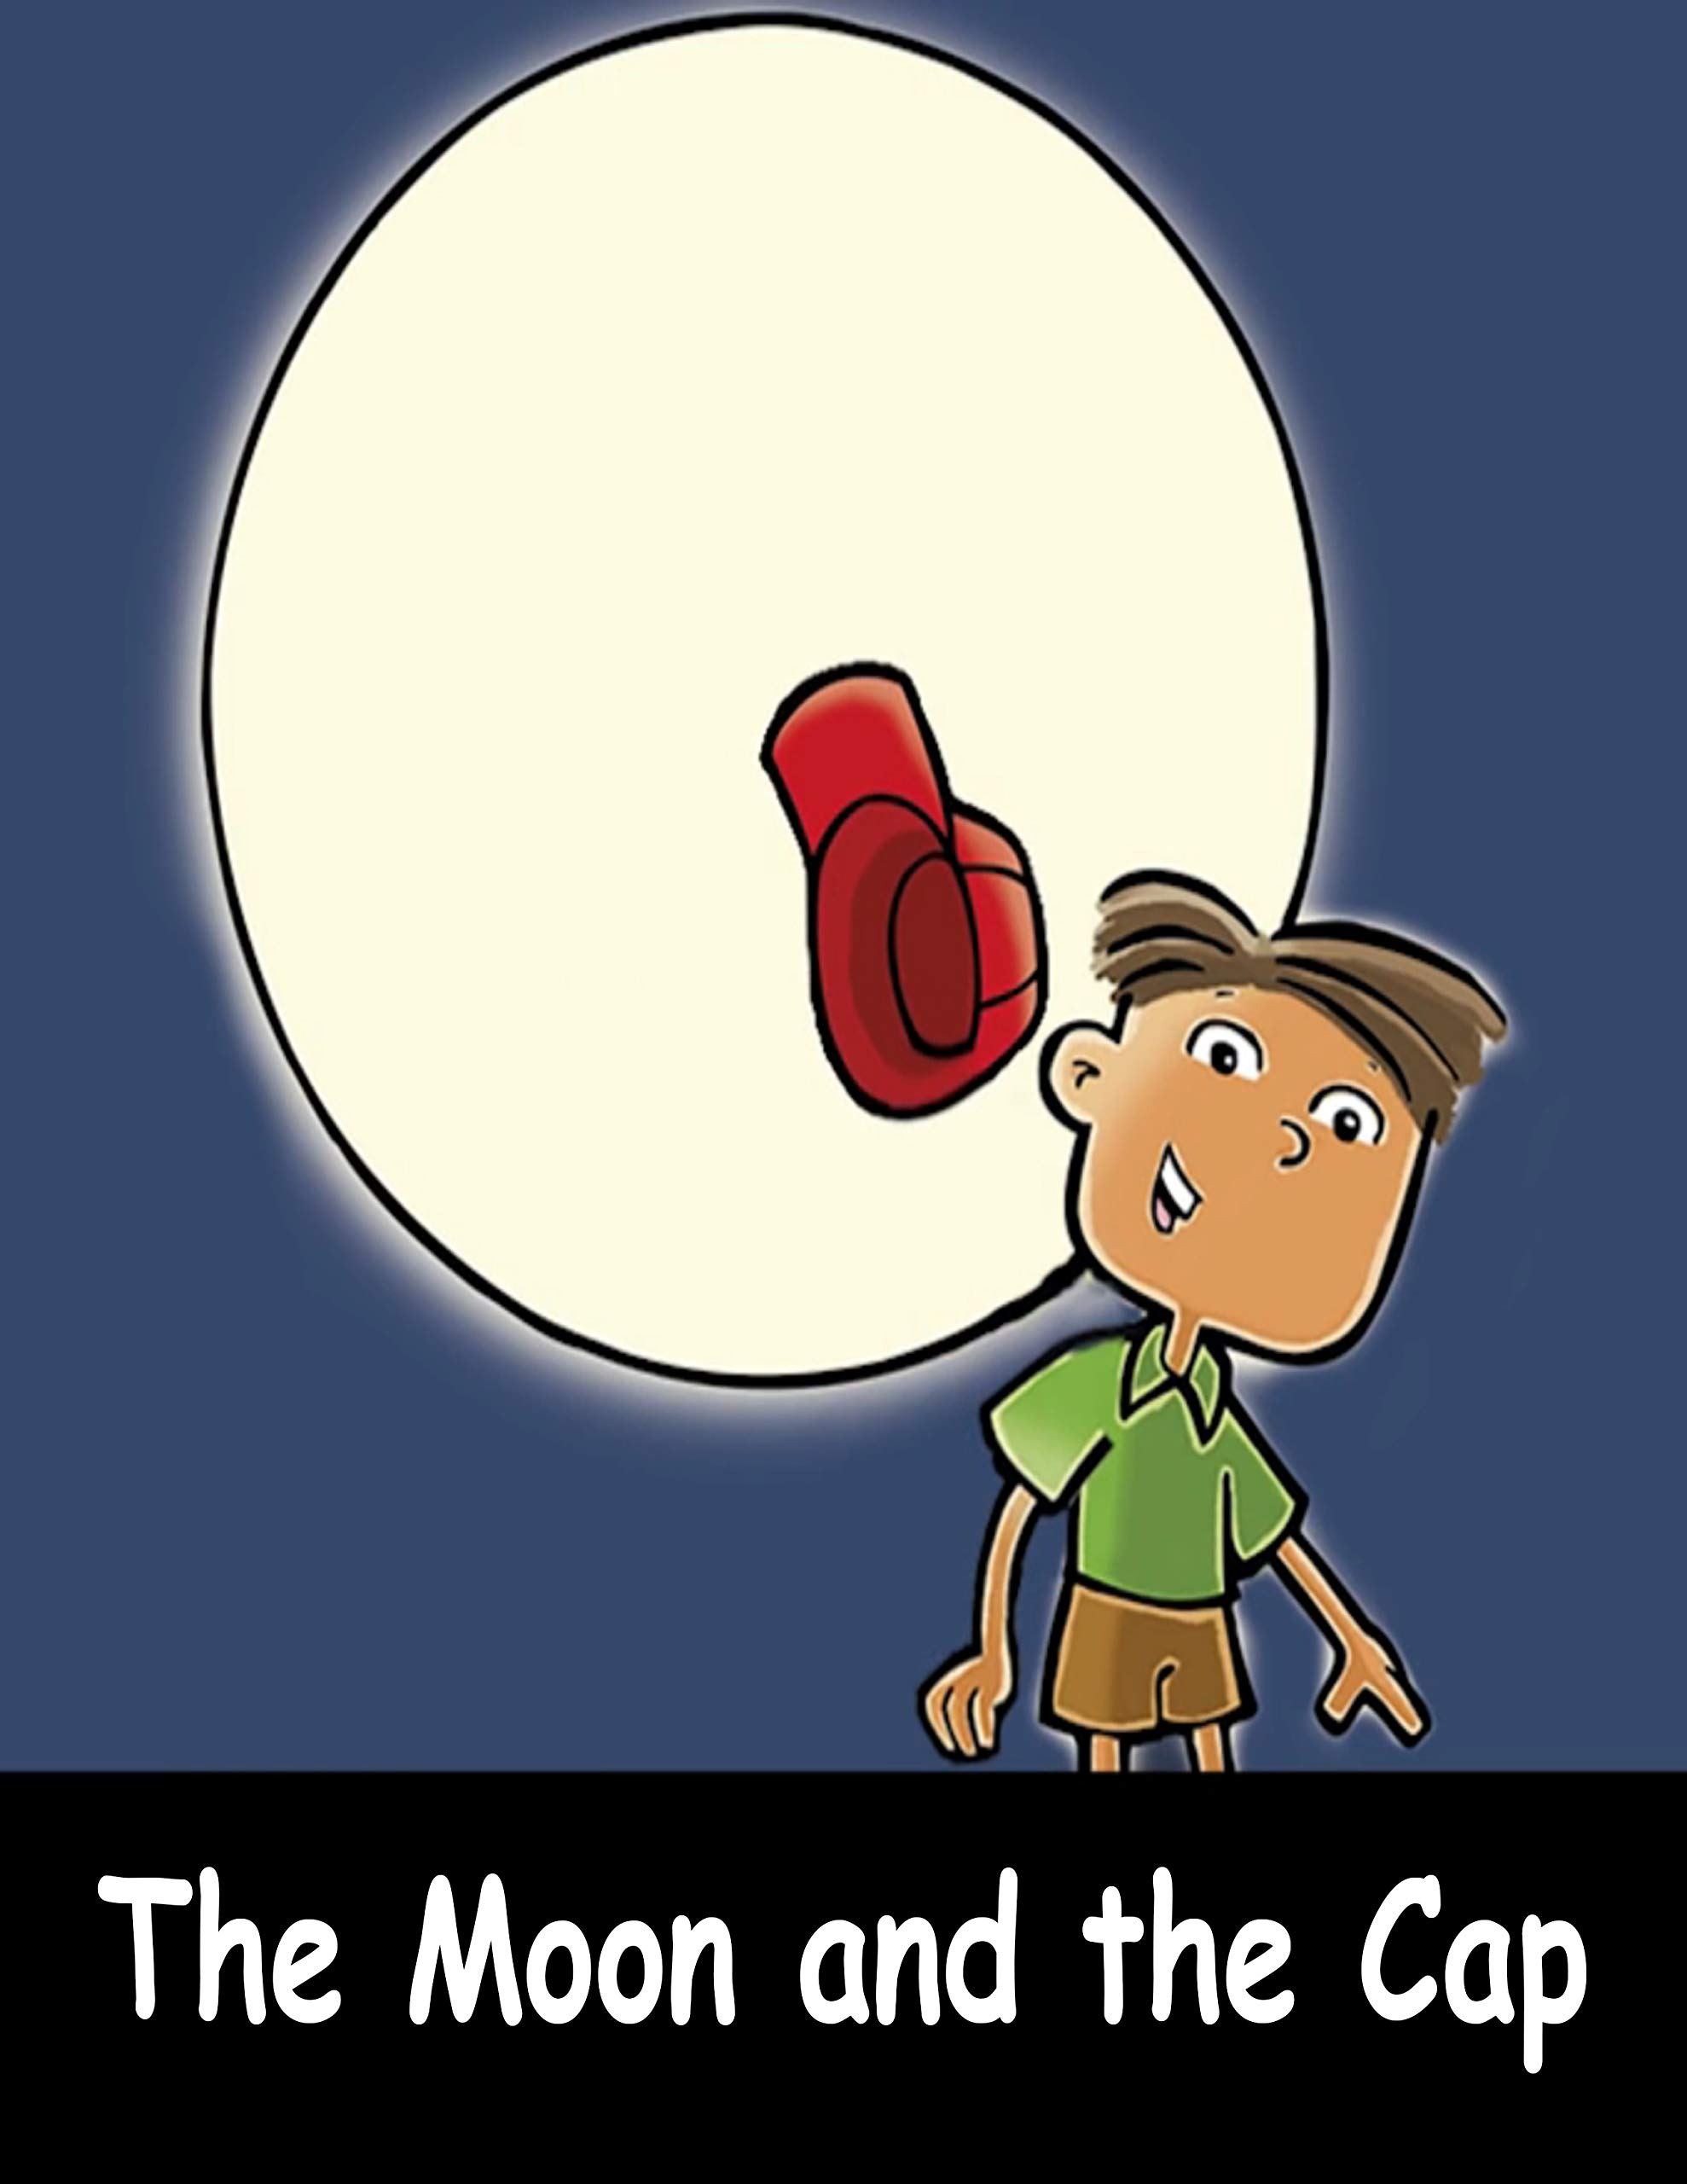 The Moon and the Cap | Bedtime Stories For Kids: A collection of interesting tales for children